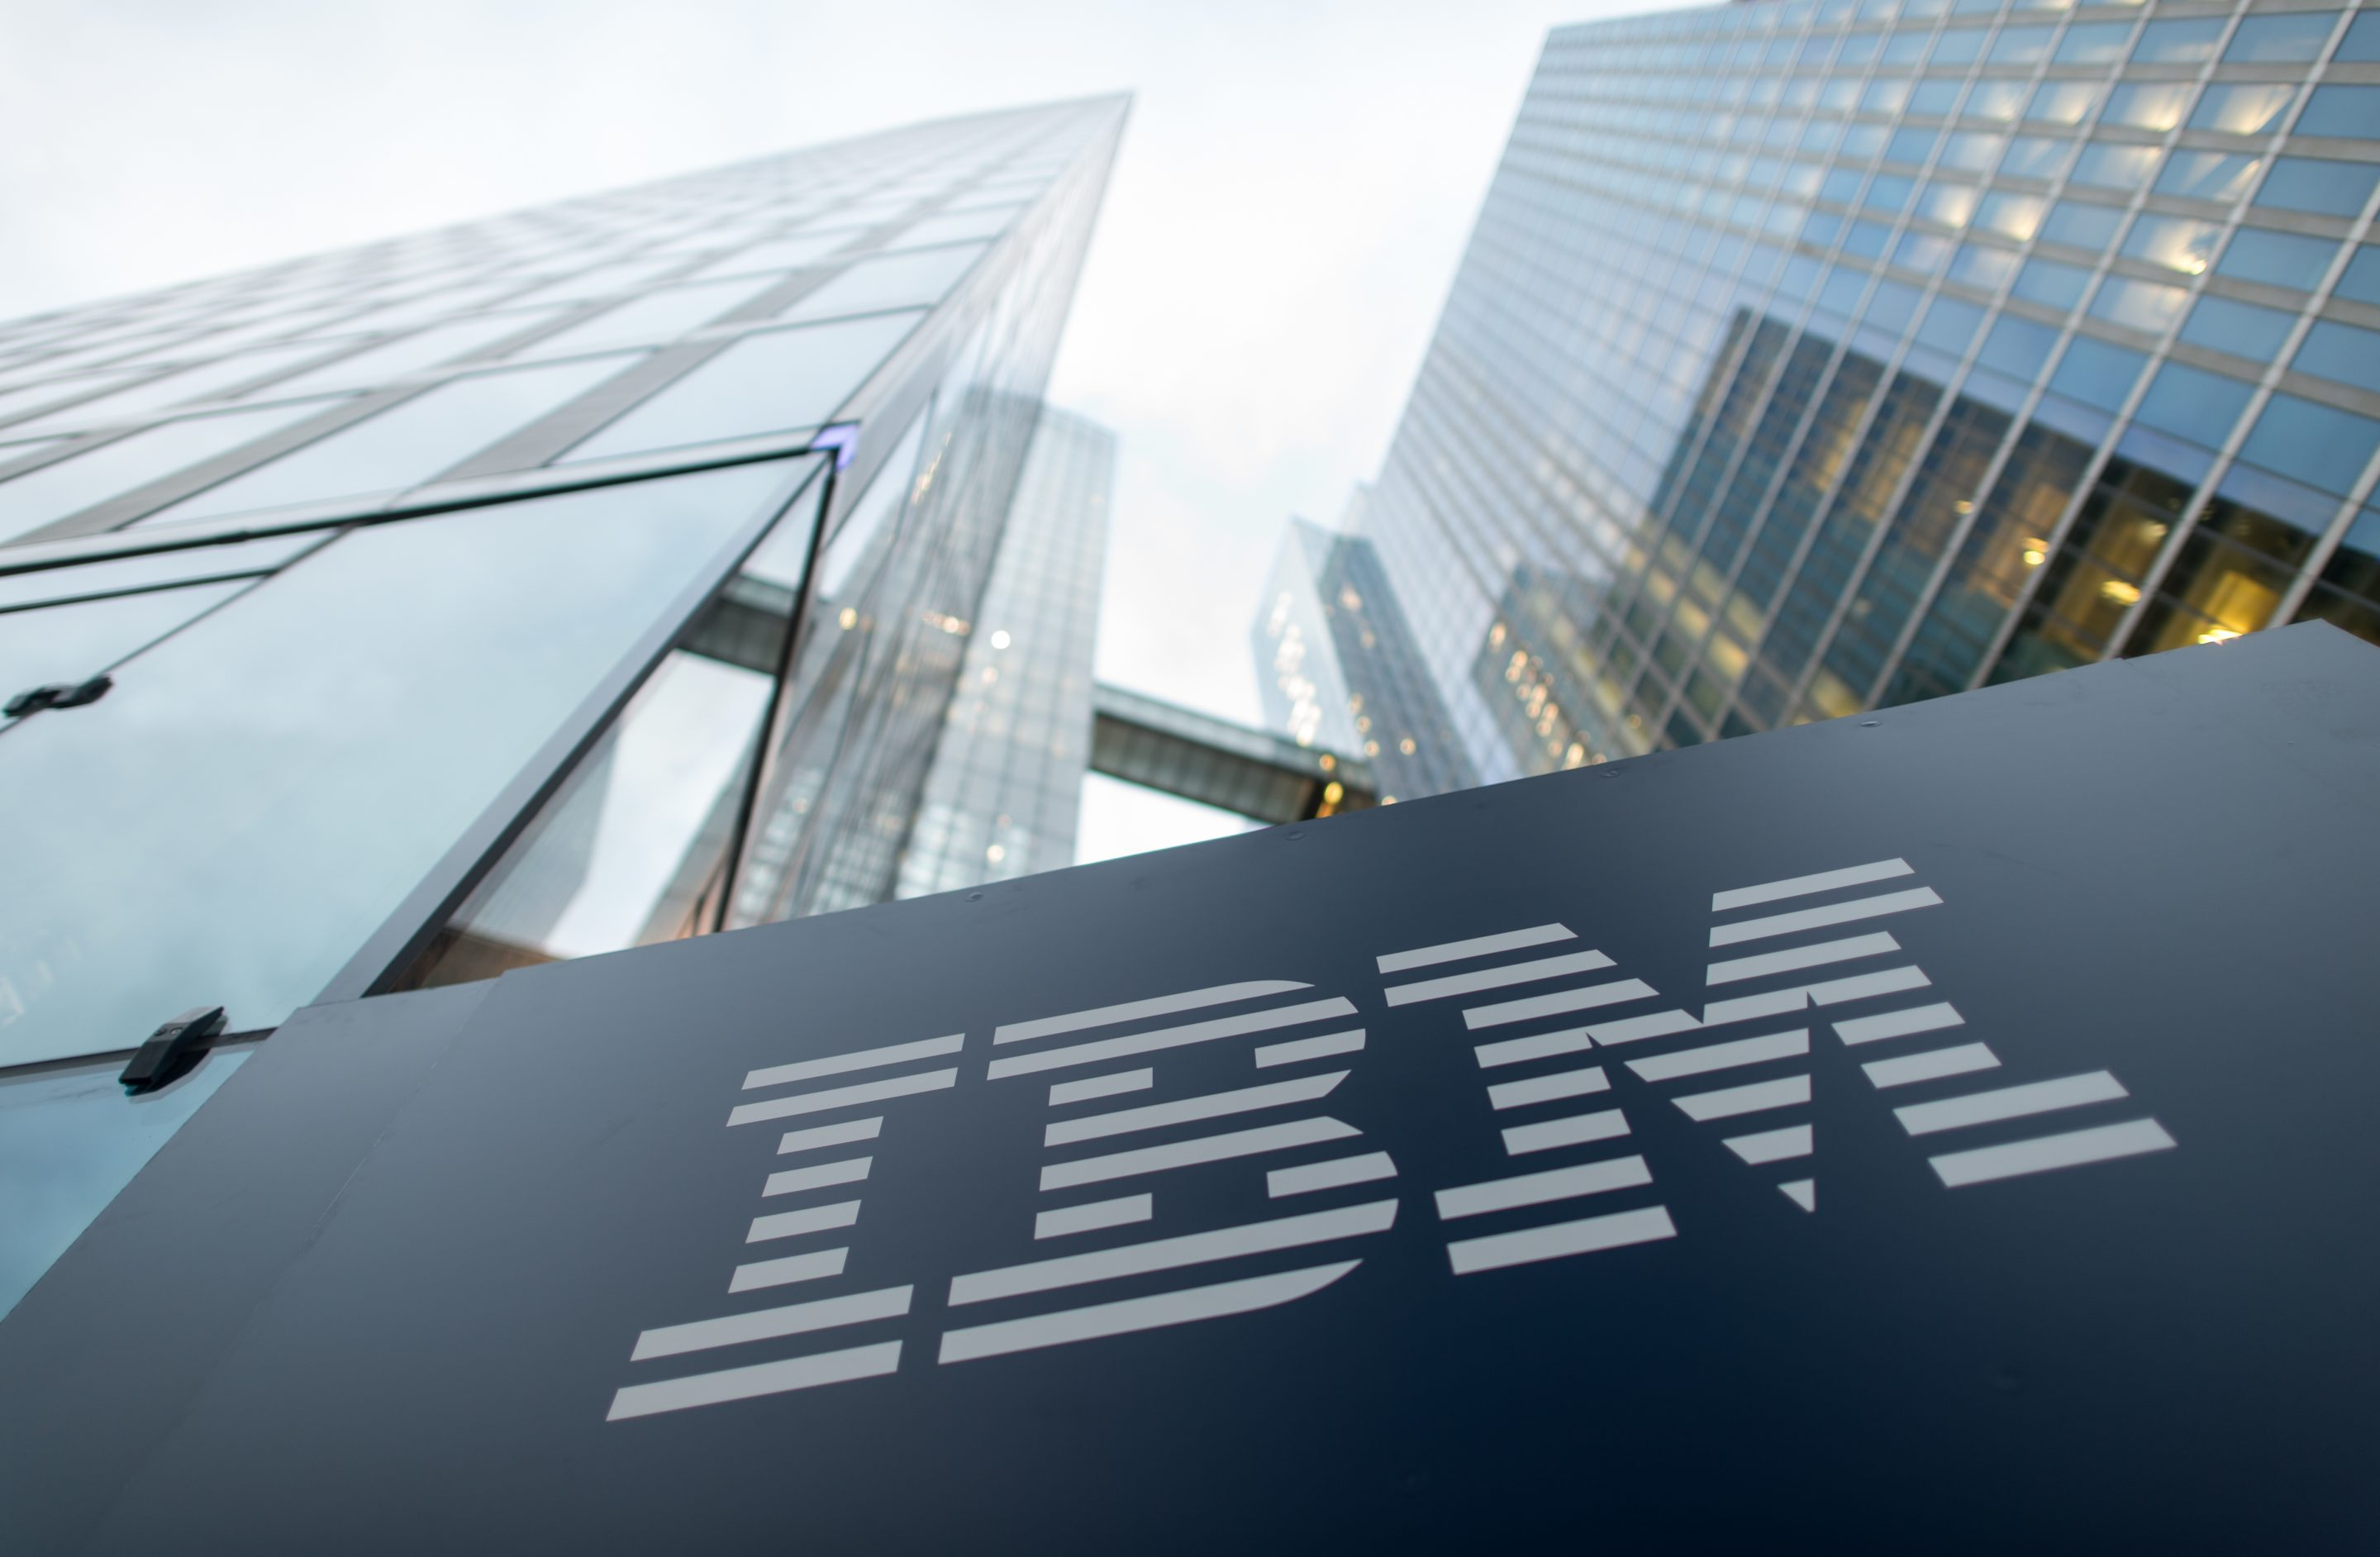 IBM Fired Up to 100,000 Older Employees, Lawsuit Alleges